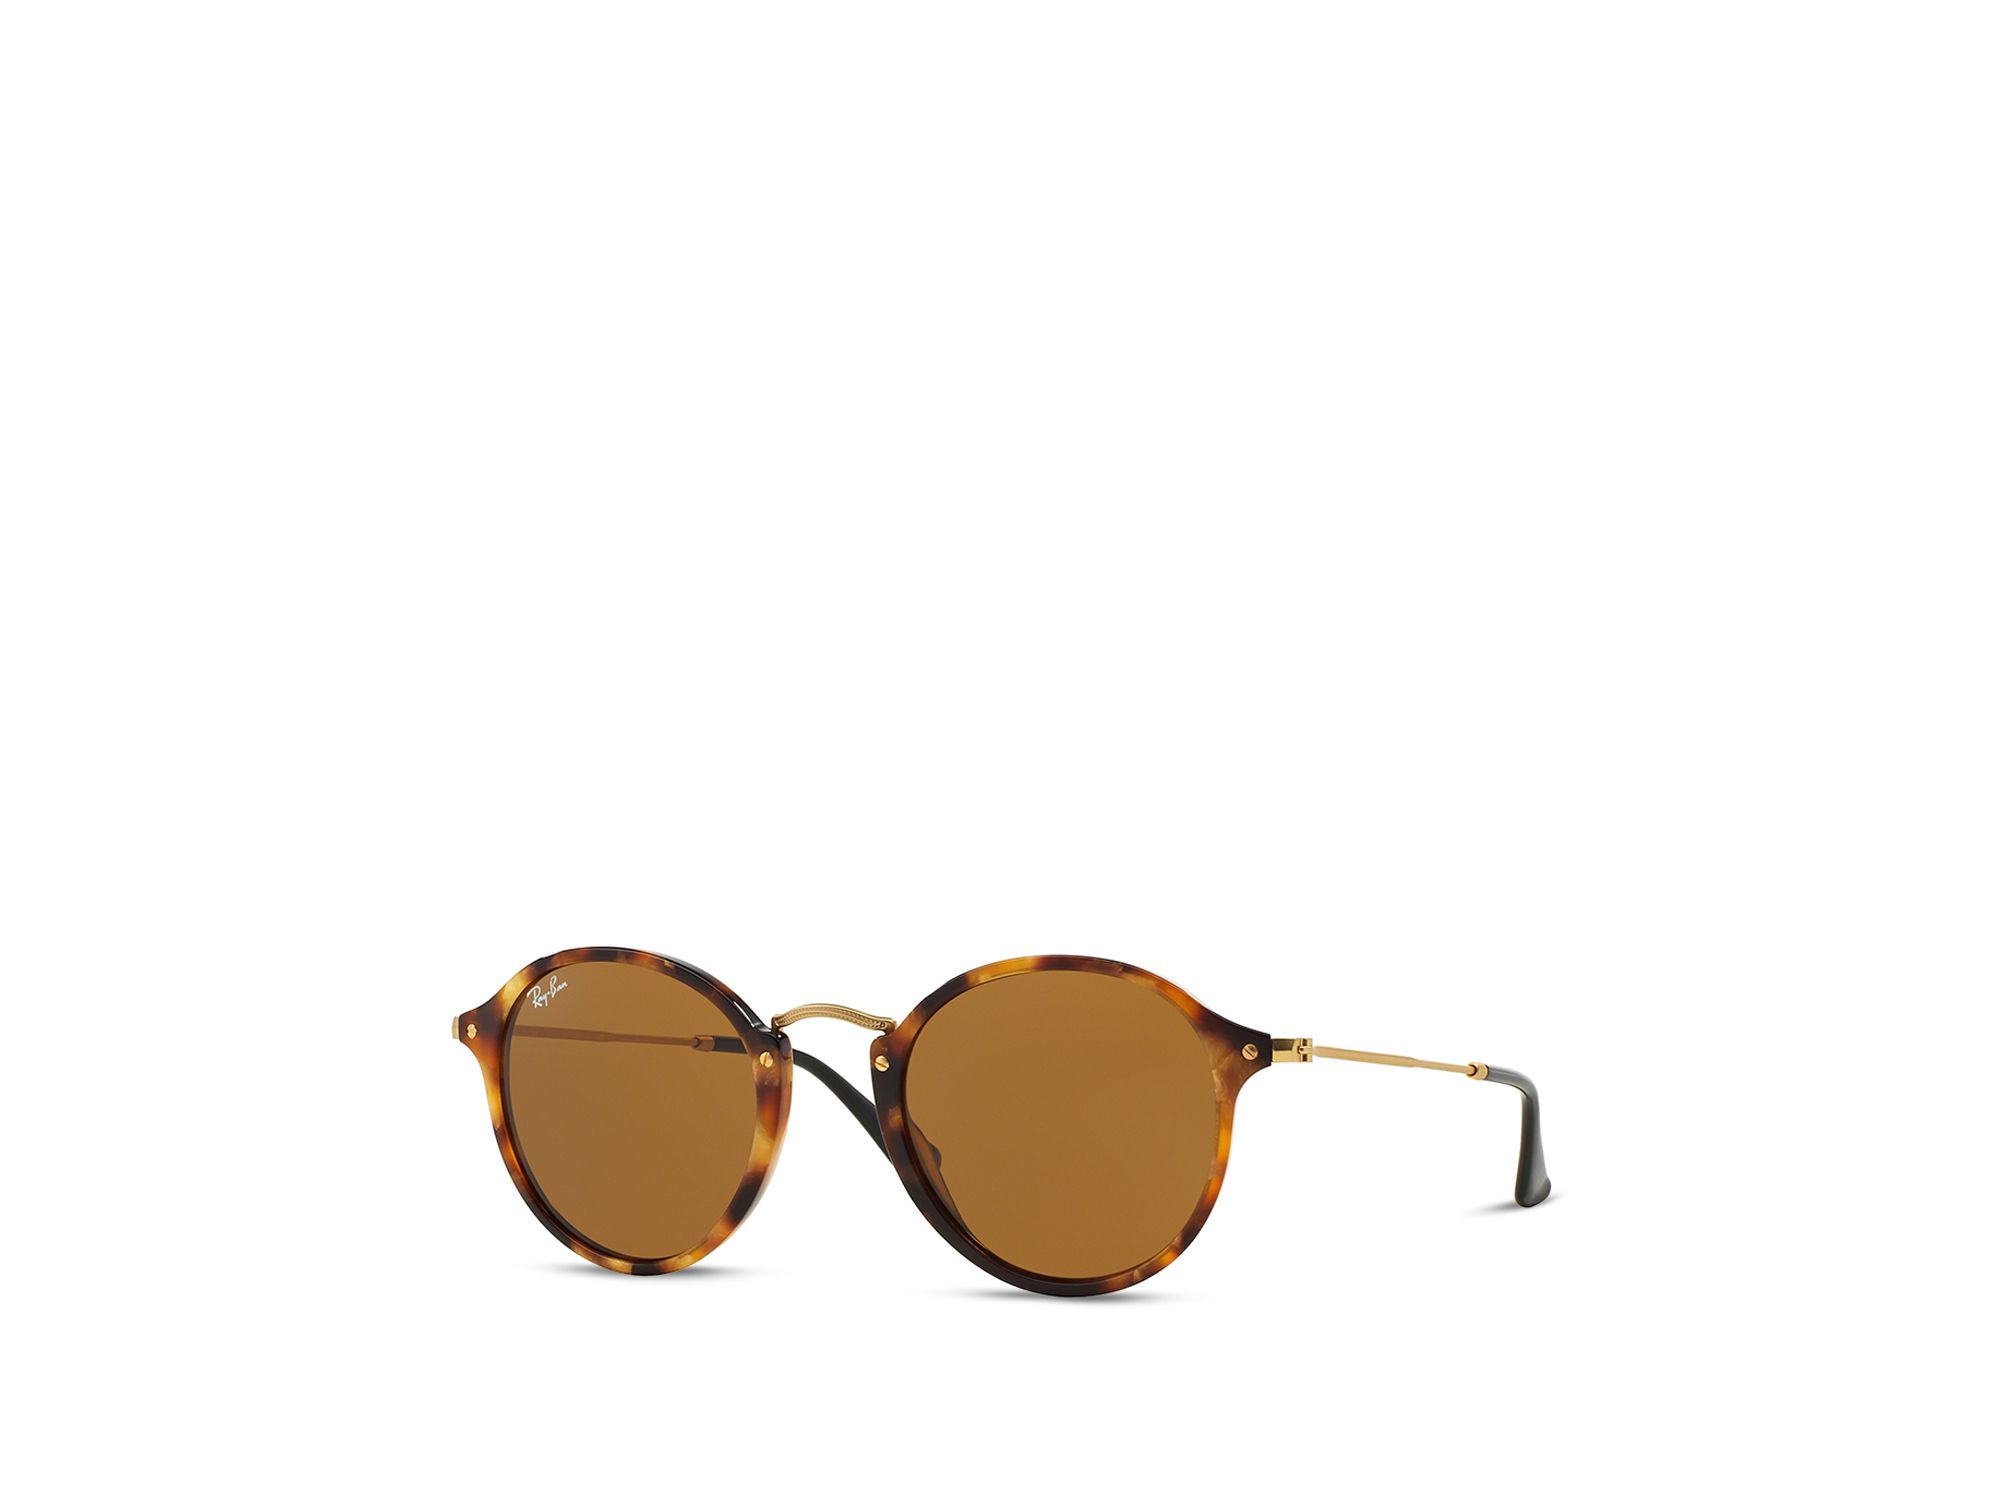 5948fe7a80 Ray-Ban Retro Round Sunglasses in Brown for Men - Lyst